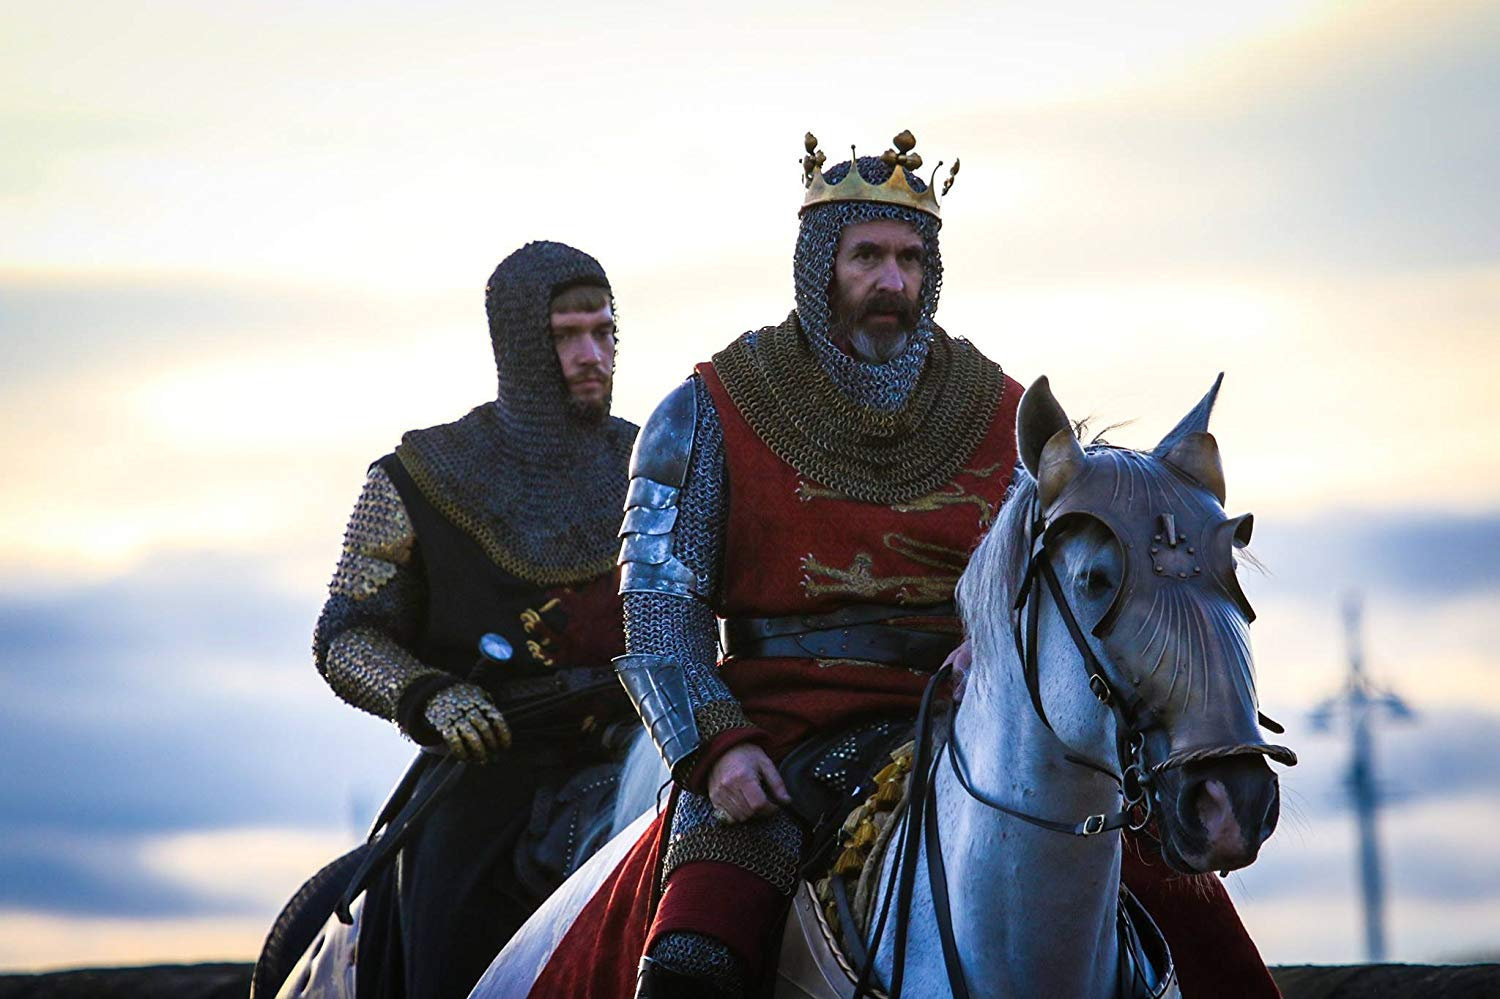 A scene from The Outlaw King